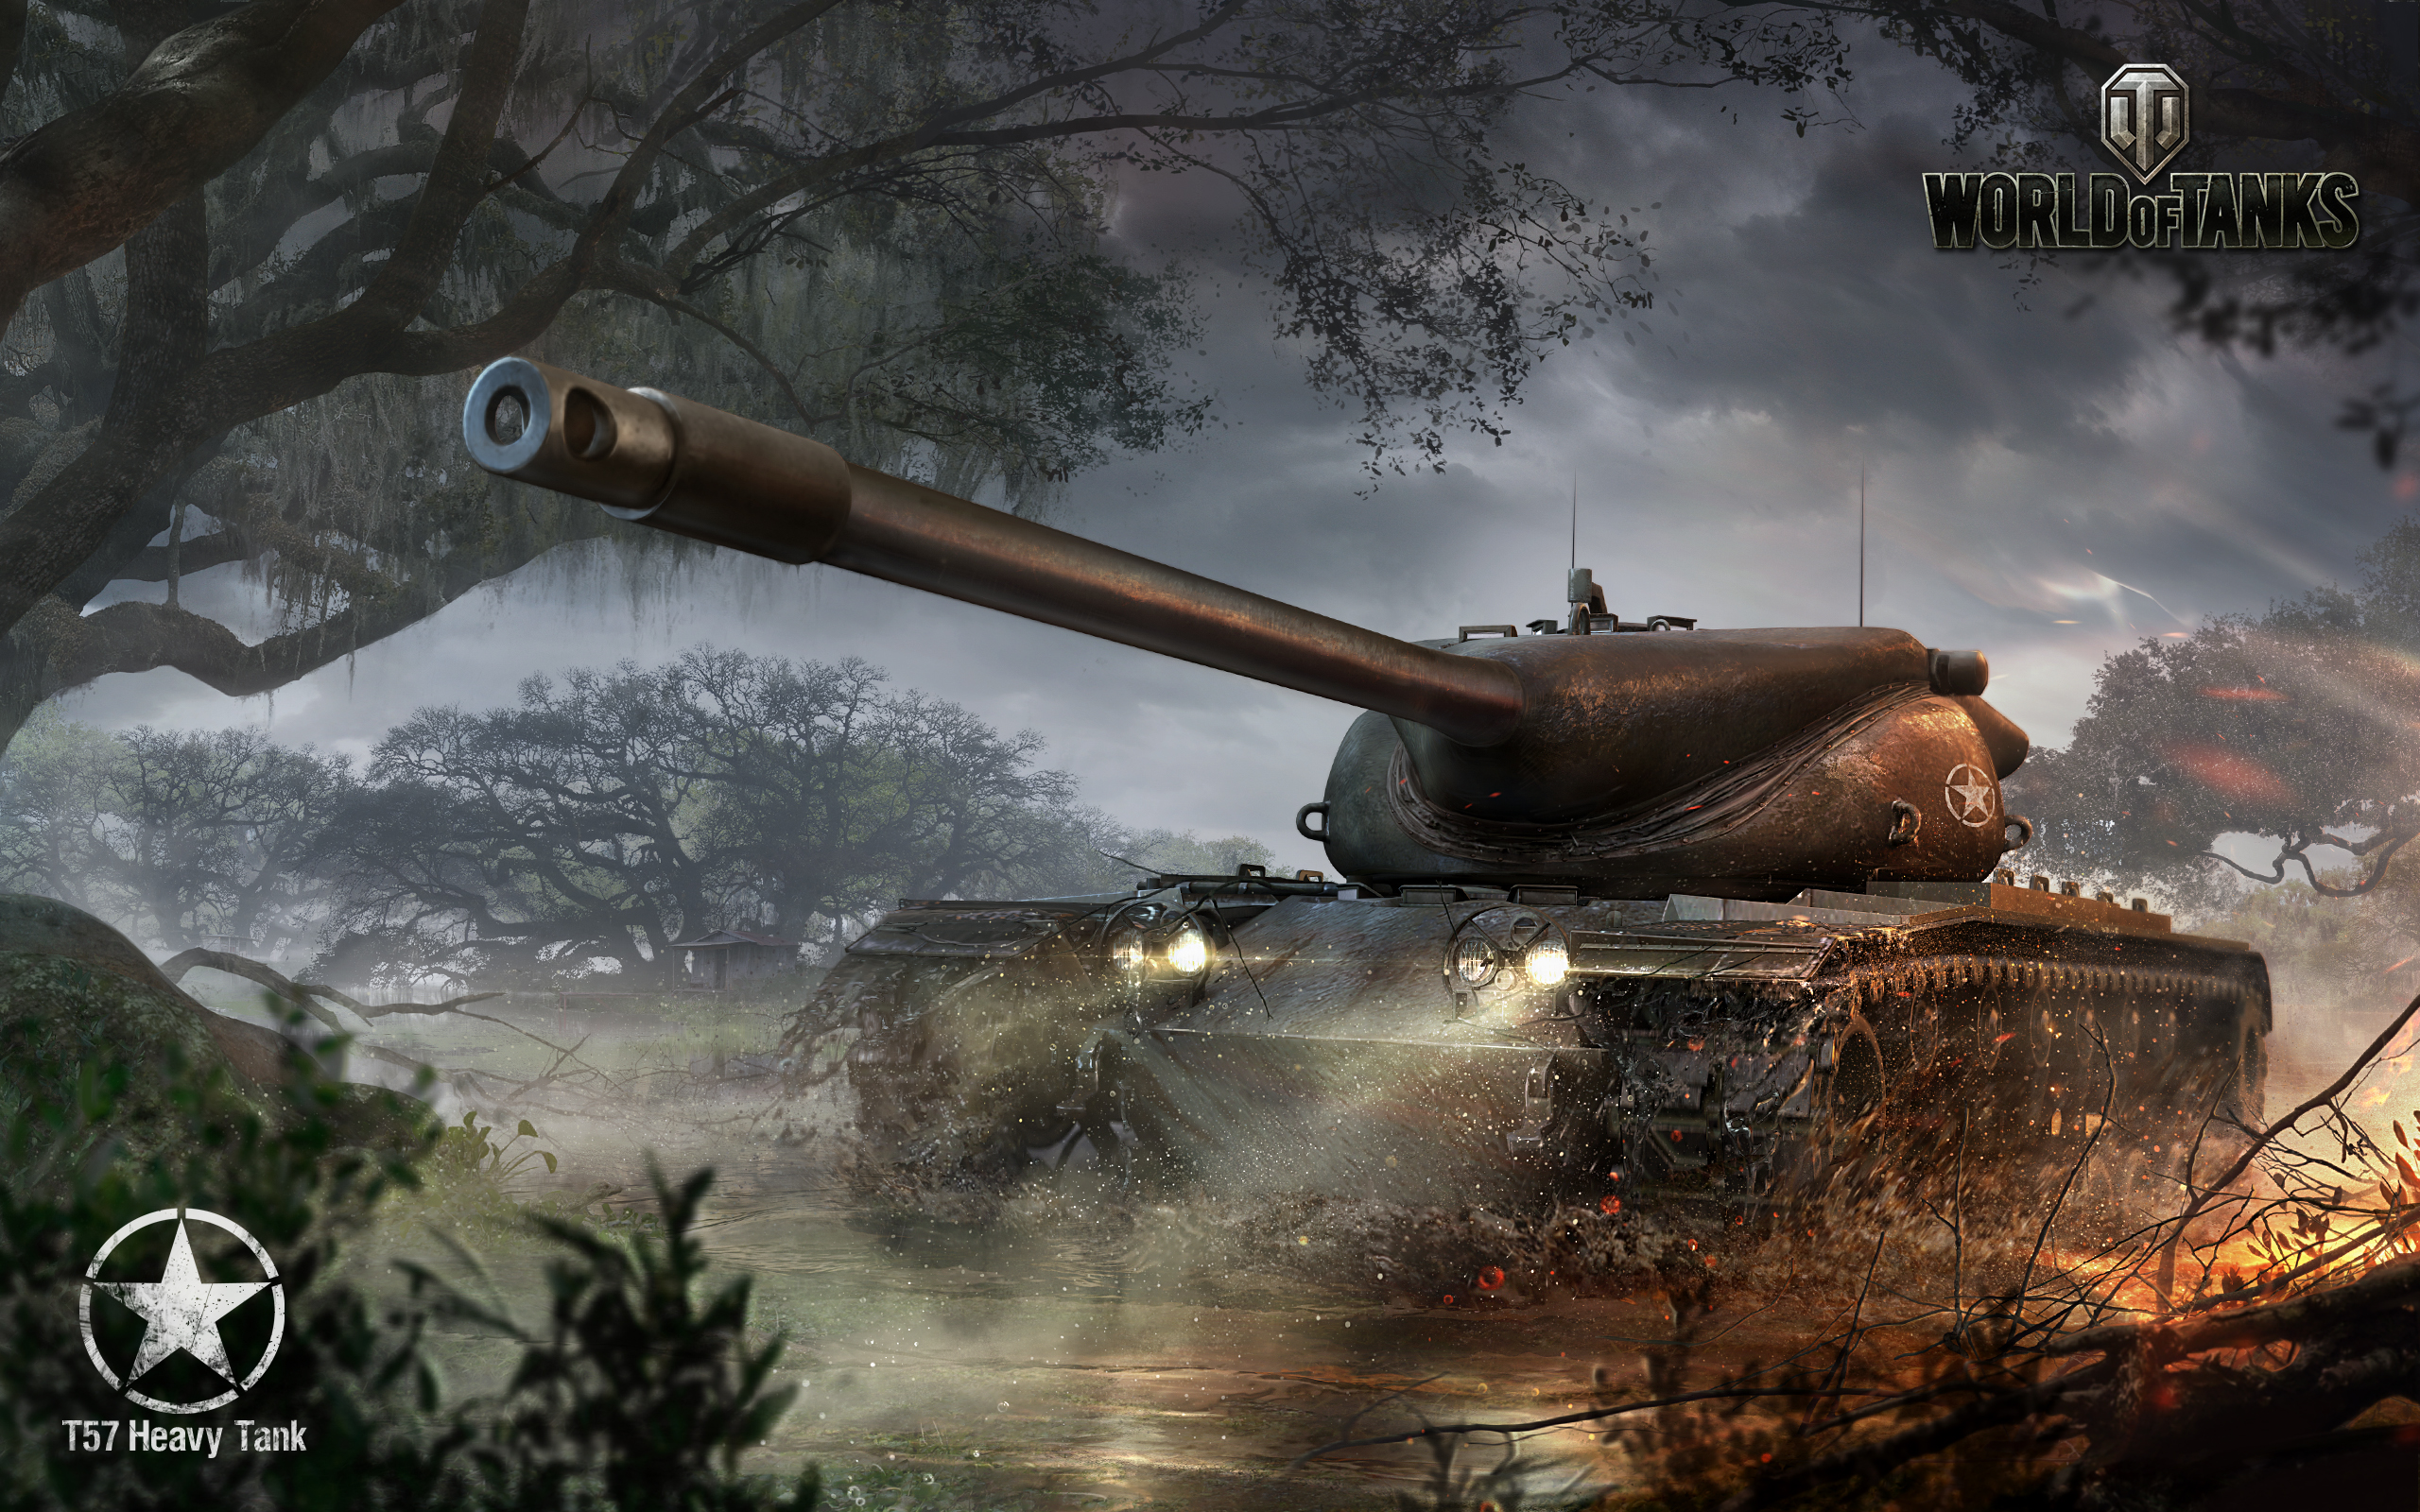 T57 Heavy Tank World of Tanks 873.2 Kb